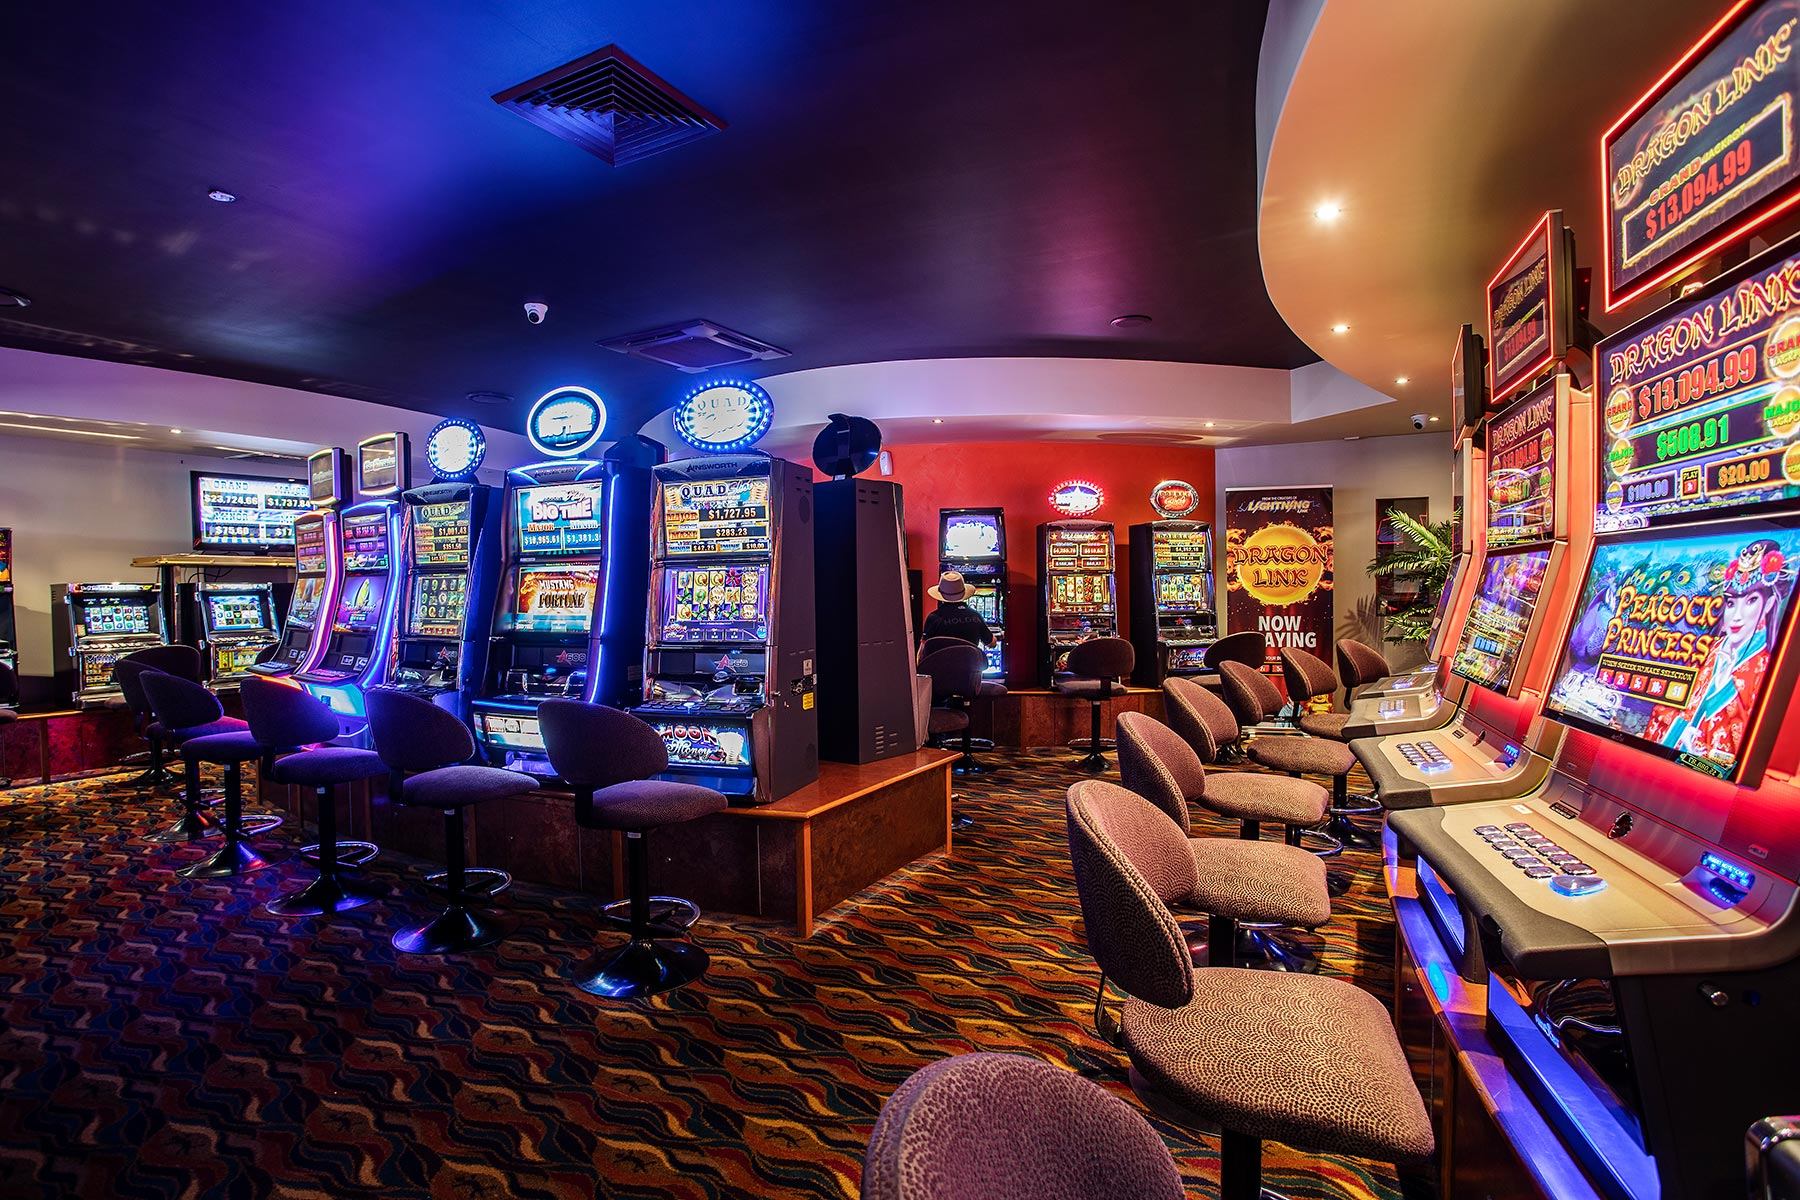 The Golden Gecko Hotel gaming